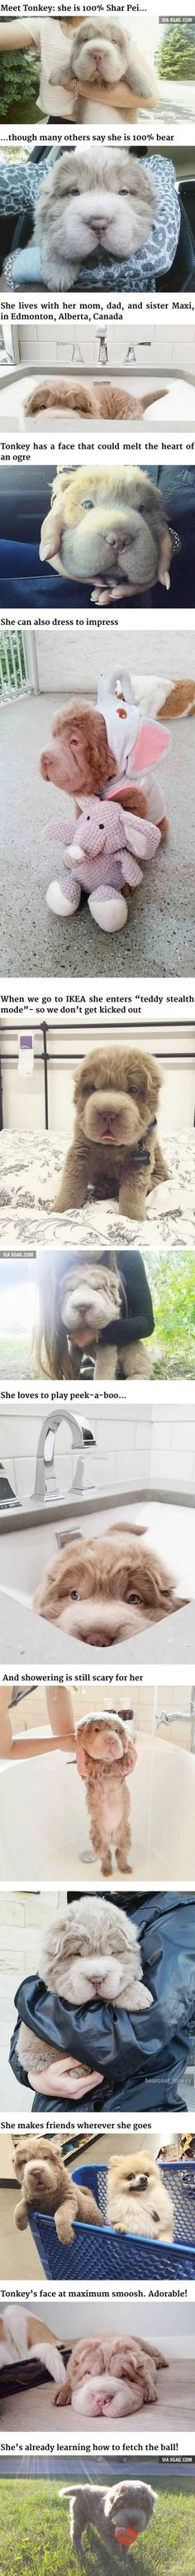 This Dog Looks Like A Bear And It's Really Popular Right Now